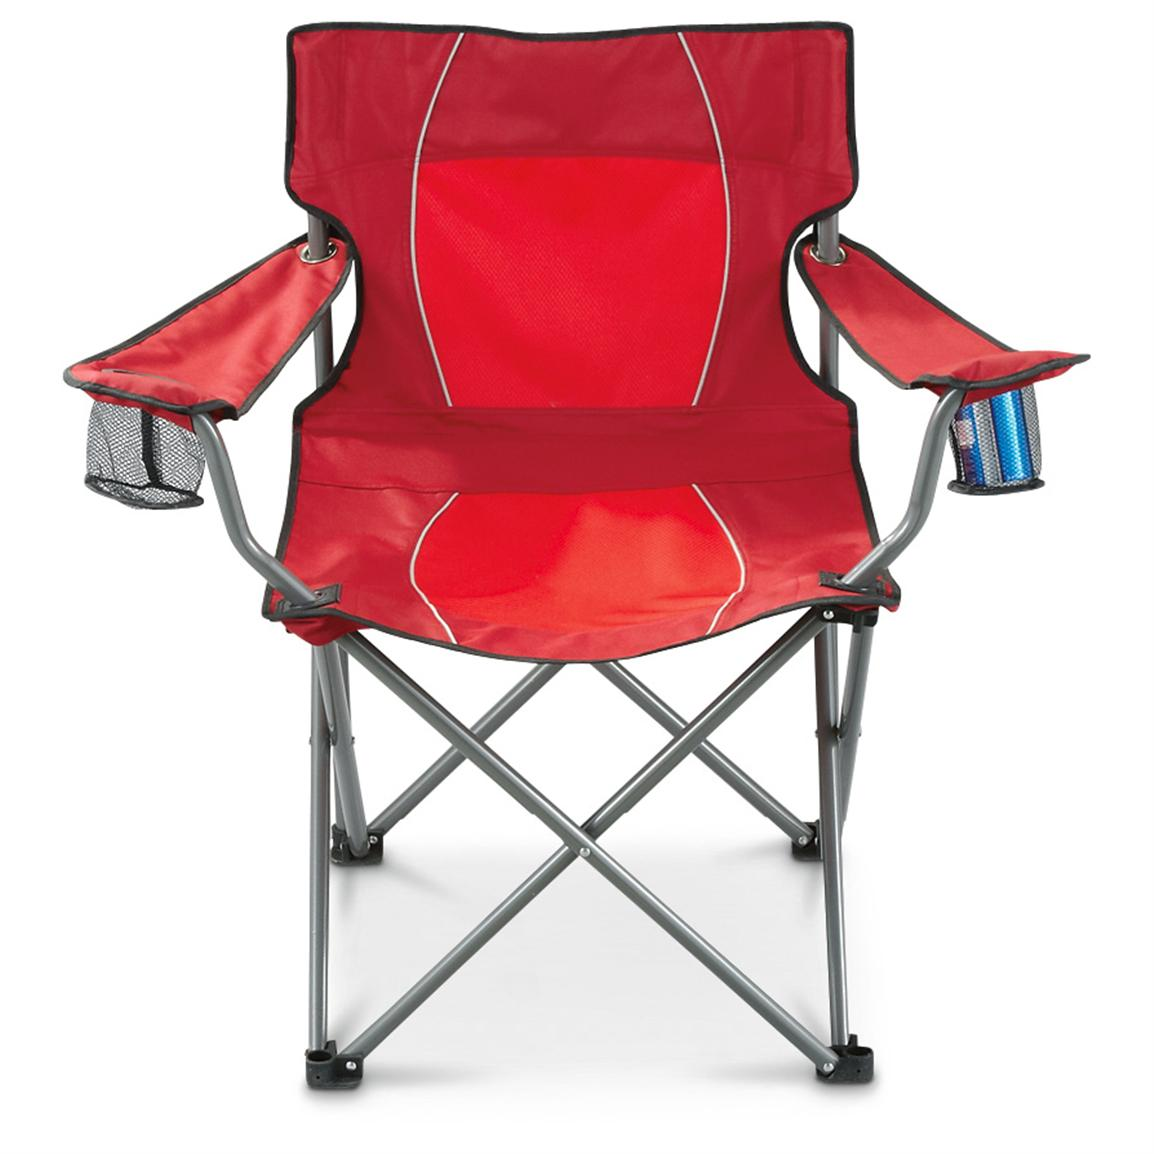 Campfire Chairs Guide Gear Monster Camp Chair 581844 Chairs At